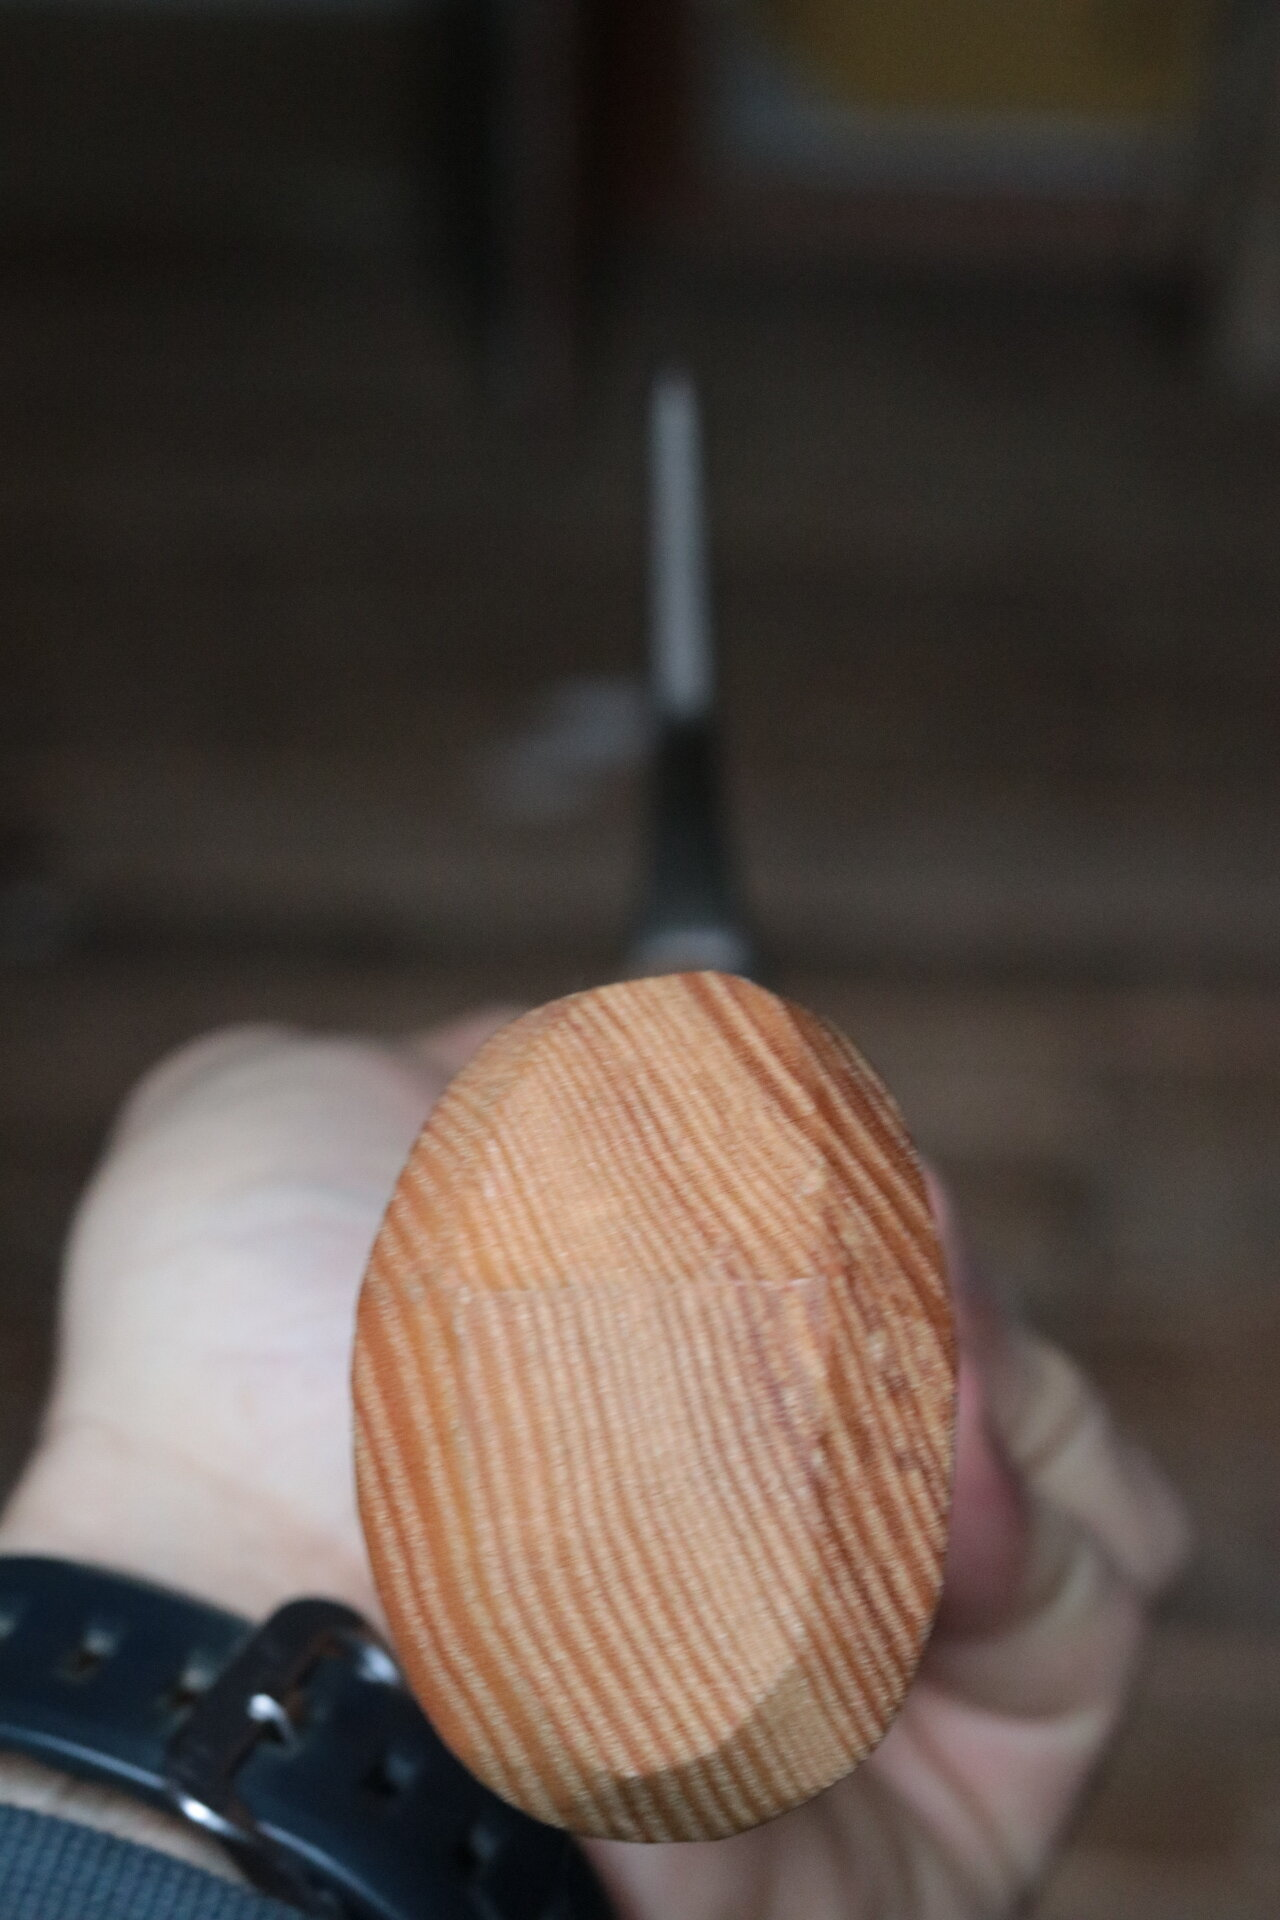 Good grain orientation in the handle